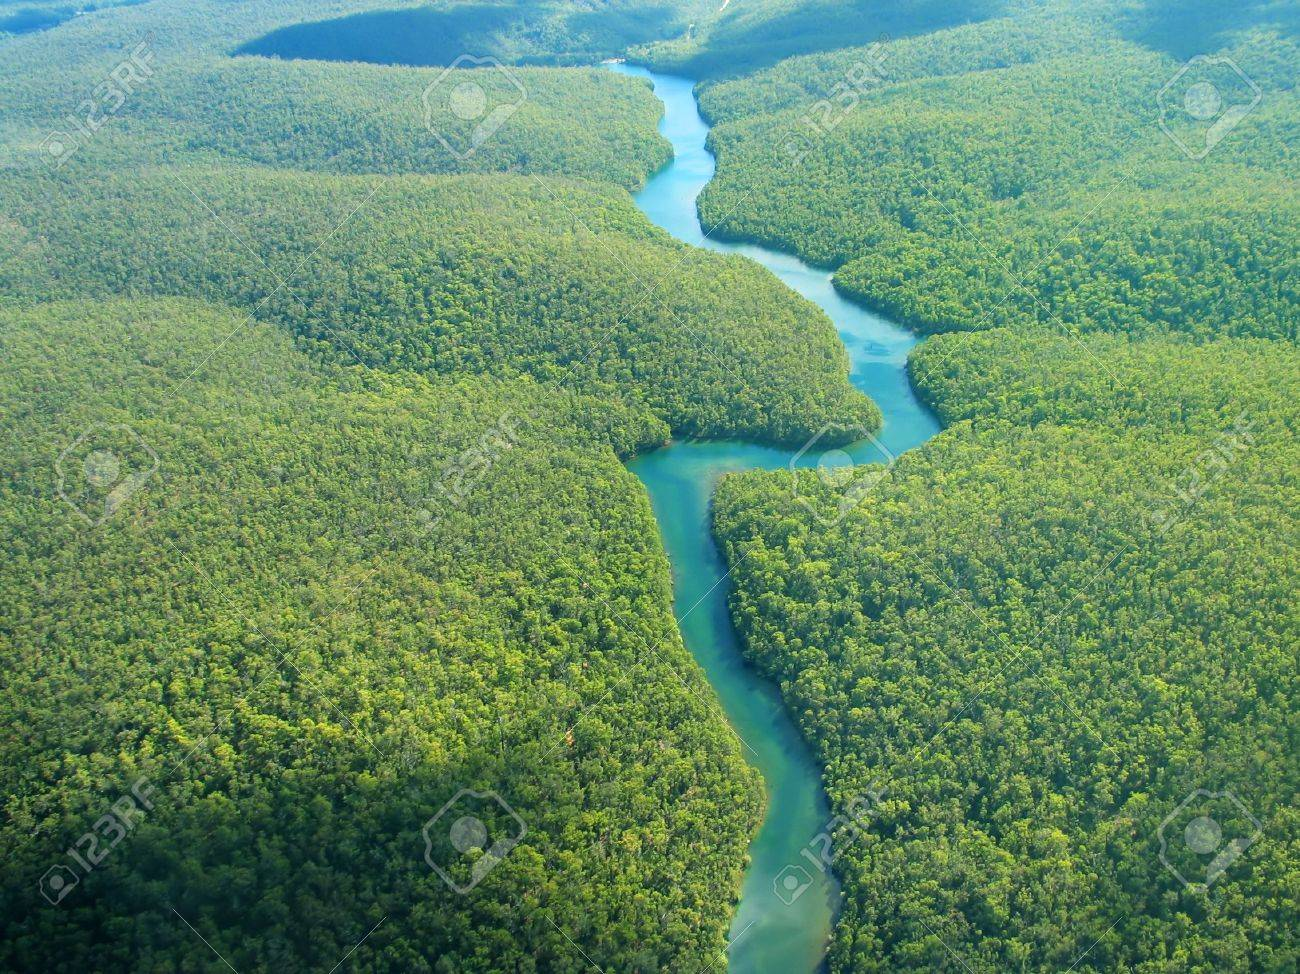 Aerial Photography - The River - 438049